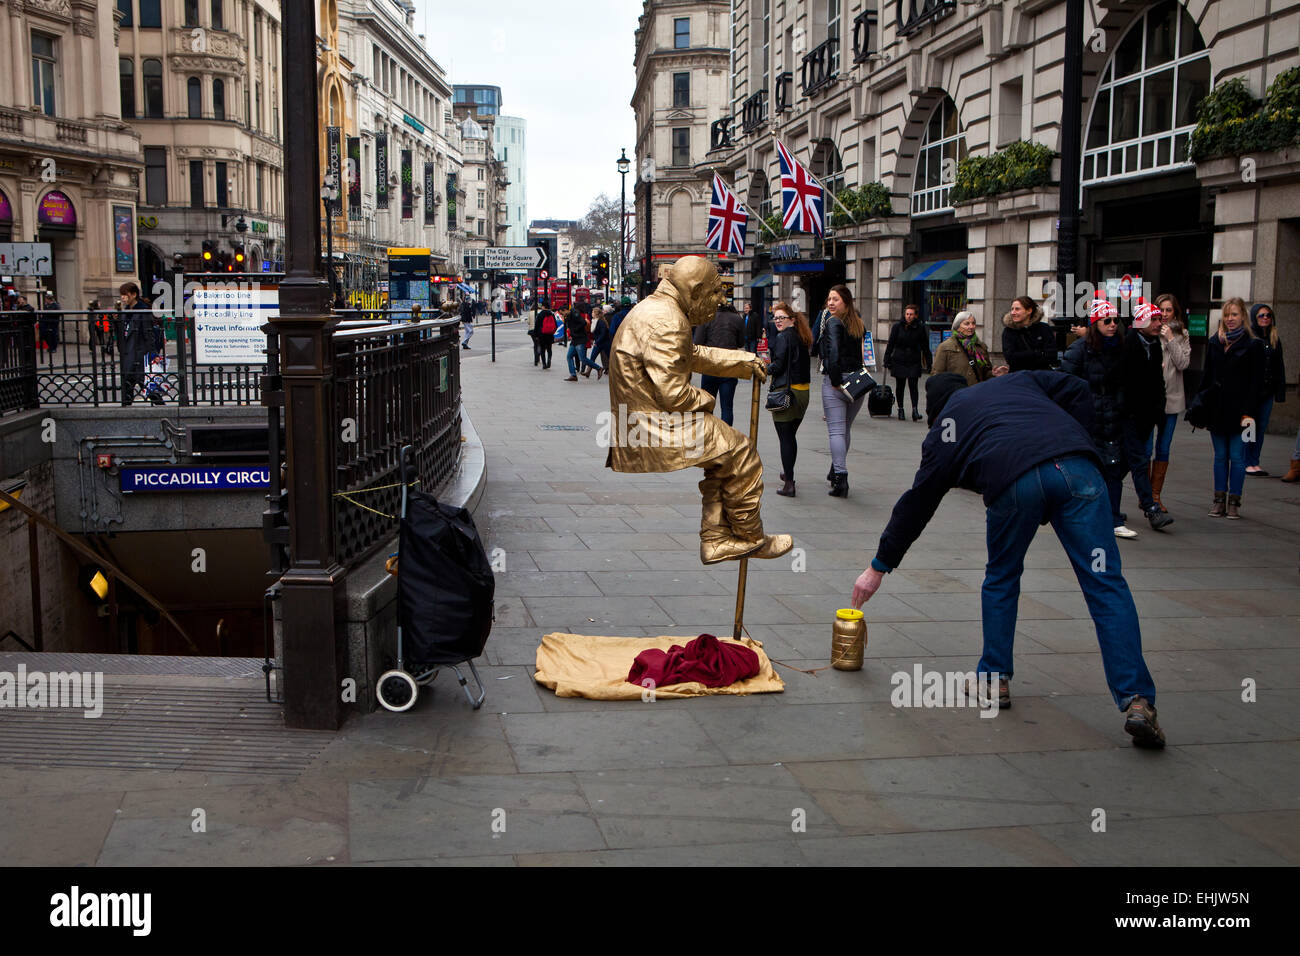 Tourist statue attraction, Piccadilly Circus - Stock Image